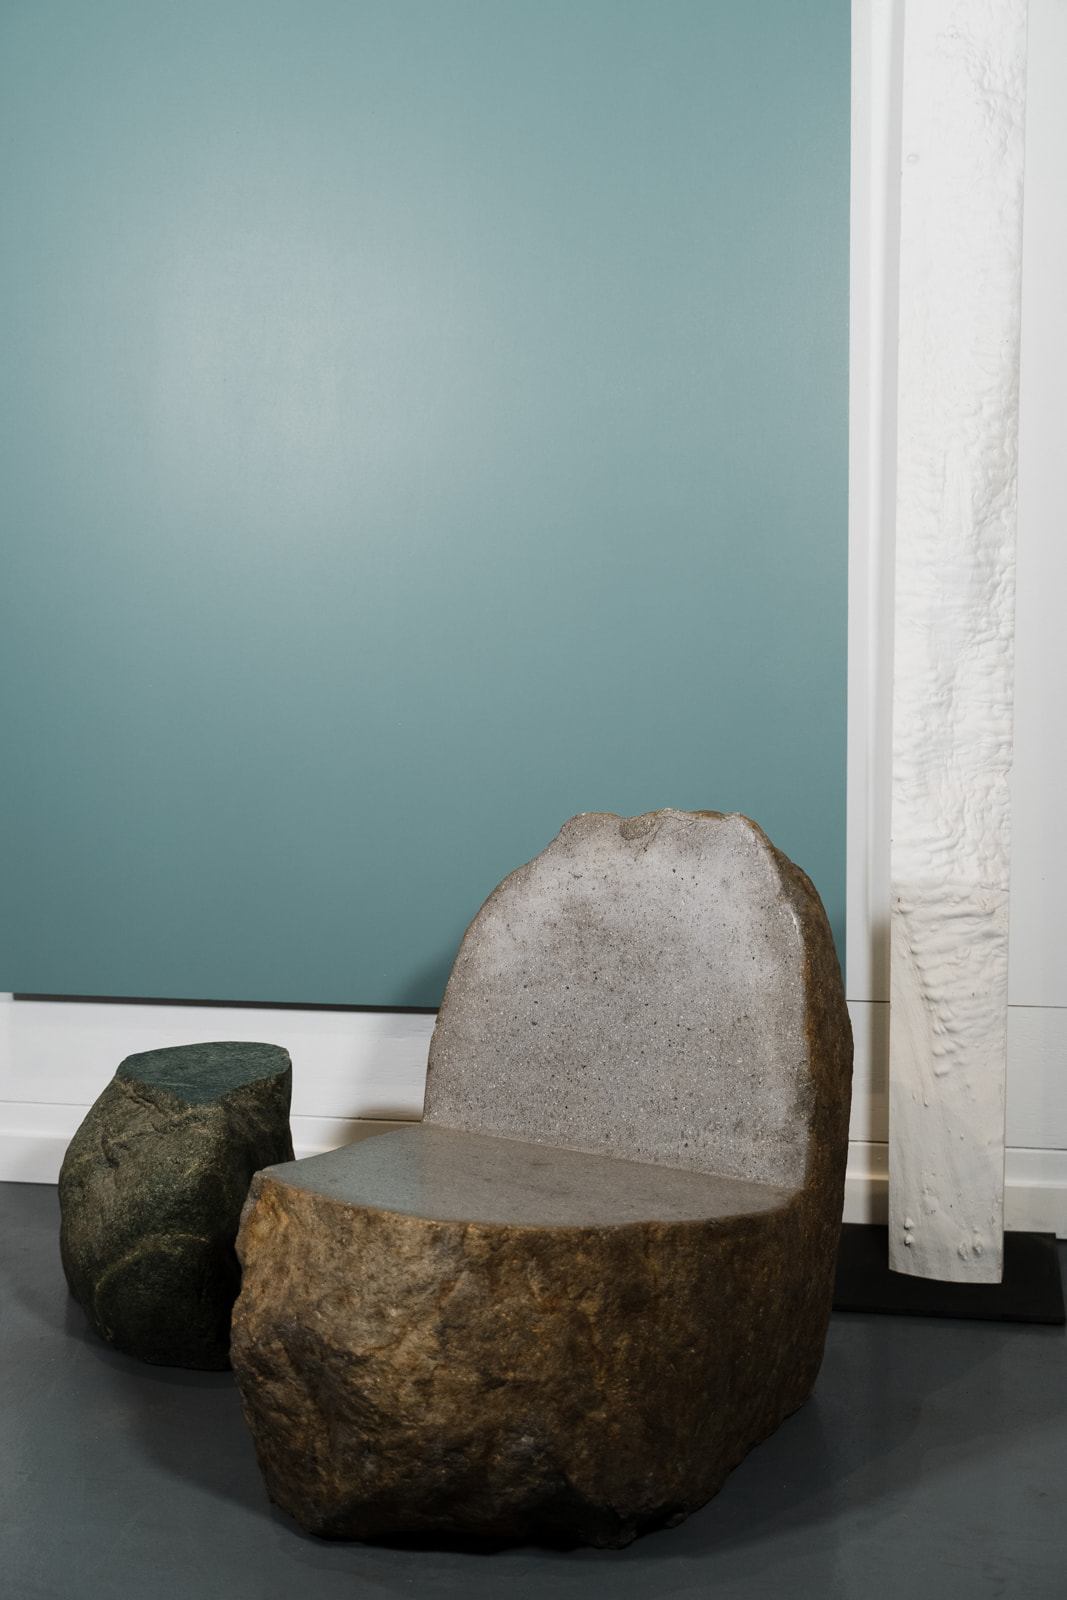 The Ebb chair and Ebb Boulder against a blue background.